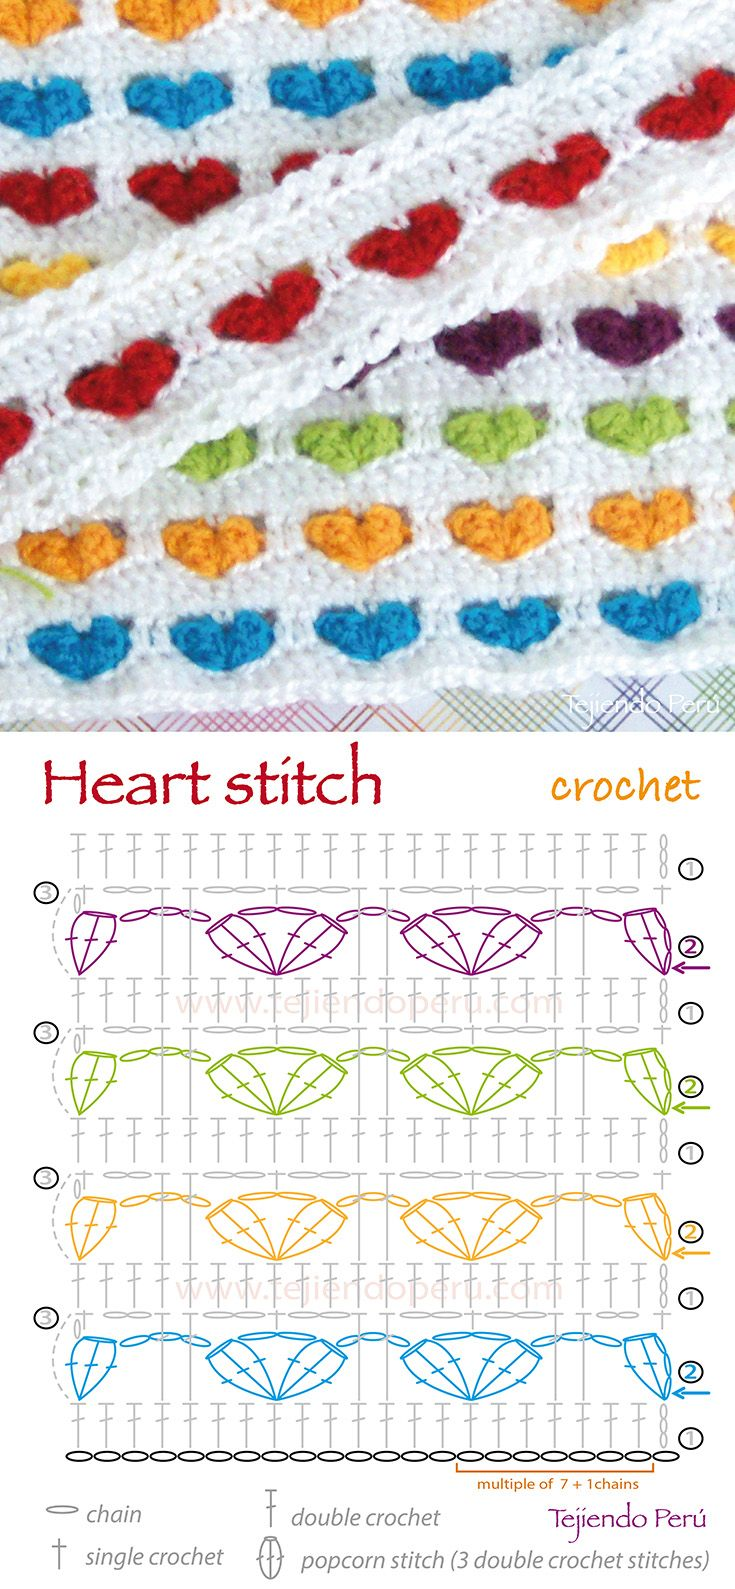 Crochet heart stitch diagram (pattern or chart)!